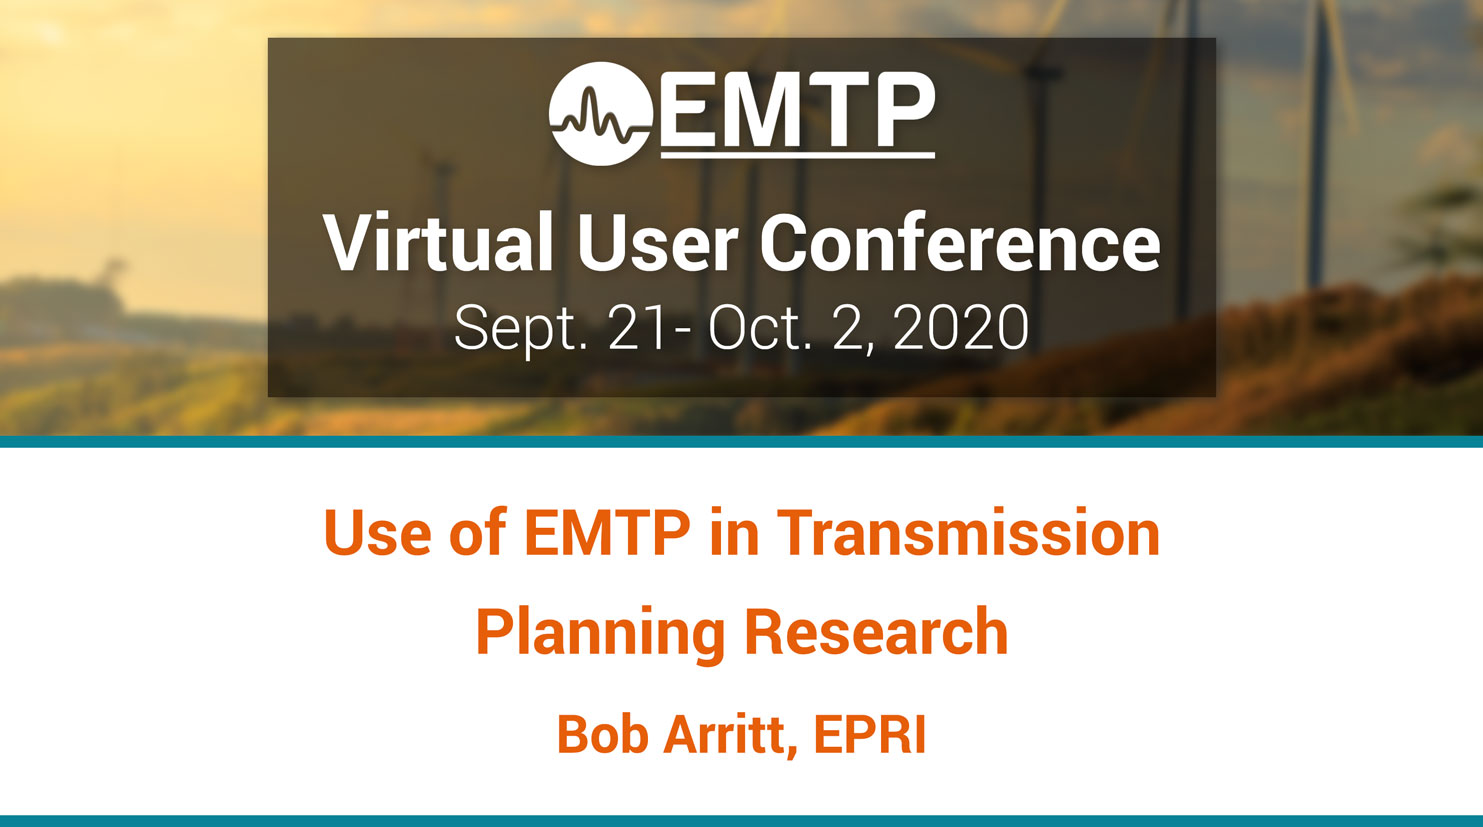 EMTP Virtual User Conference 2020